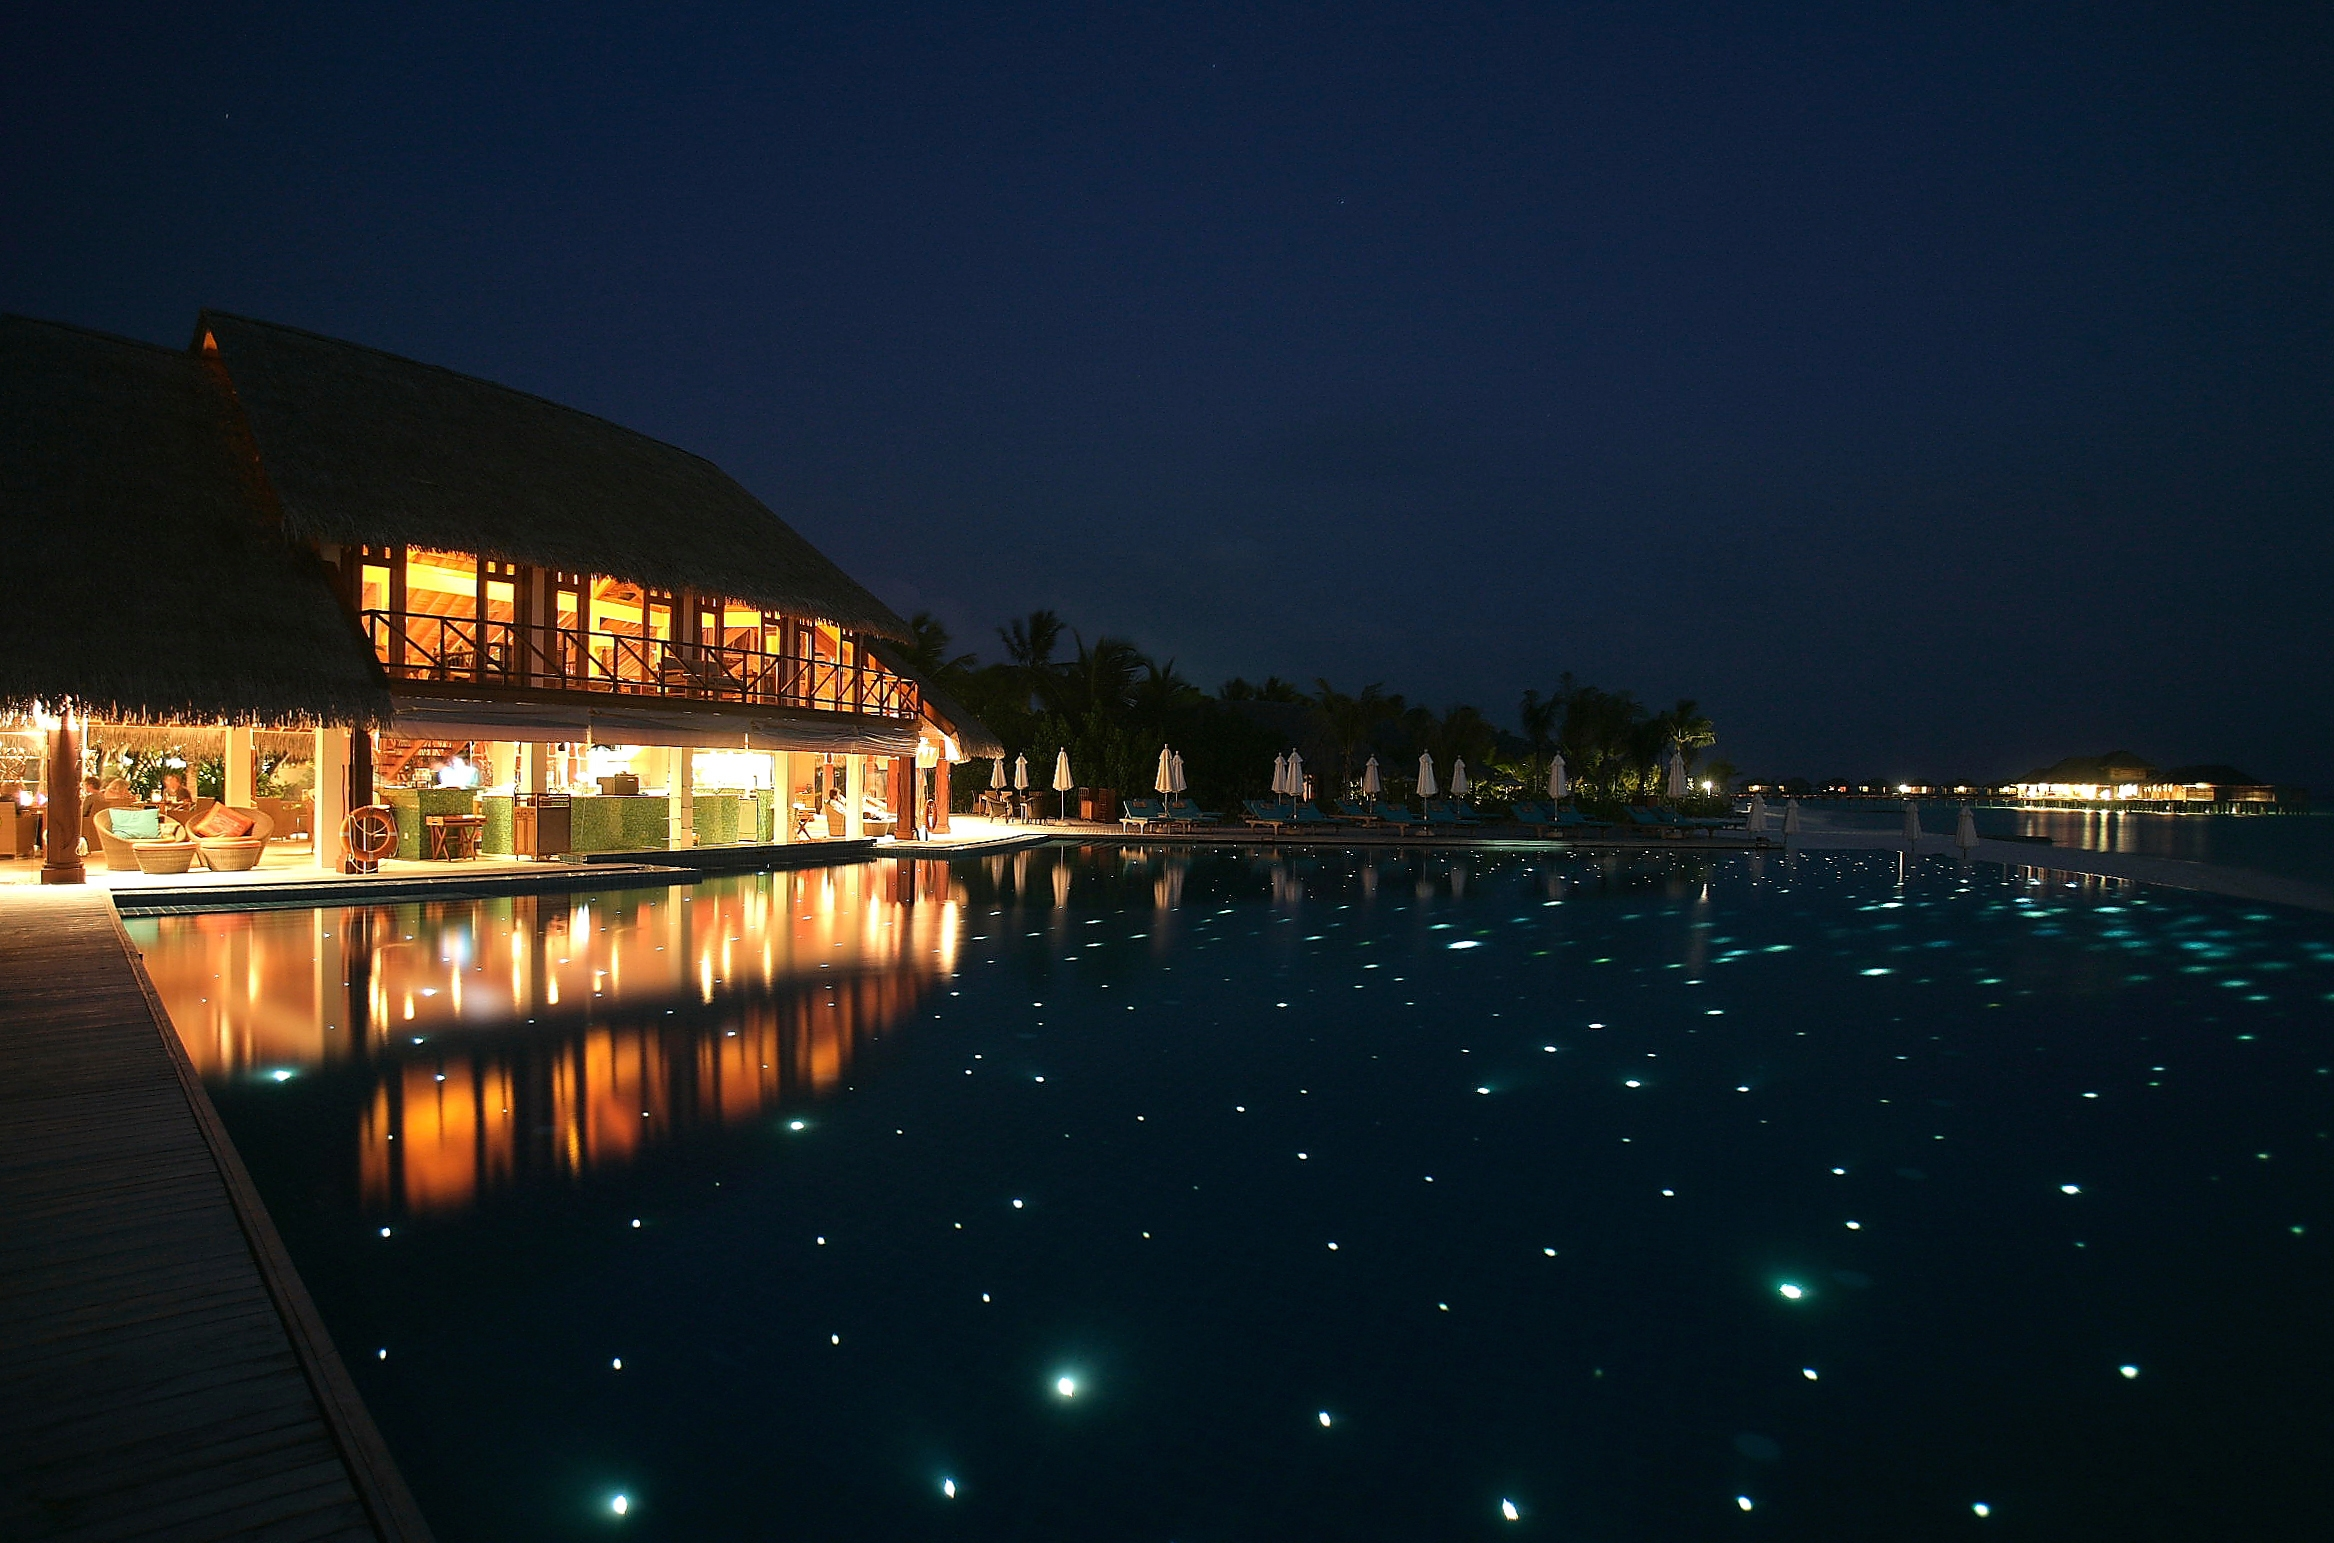 Anantara_Dhigu_Aqua_Bar_Night.JPG